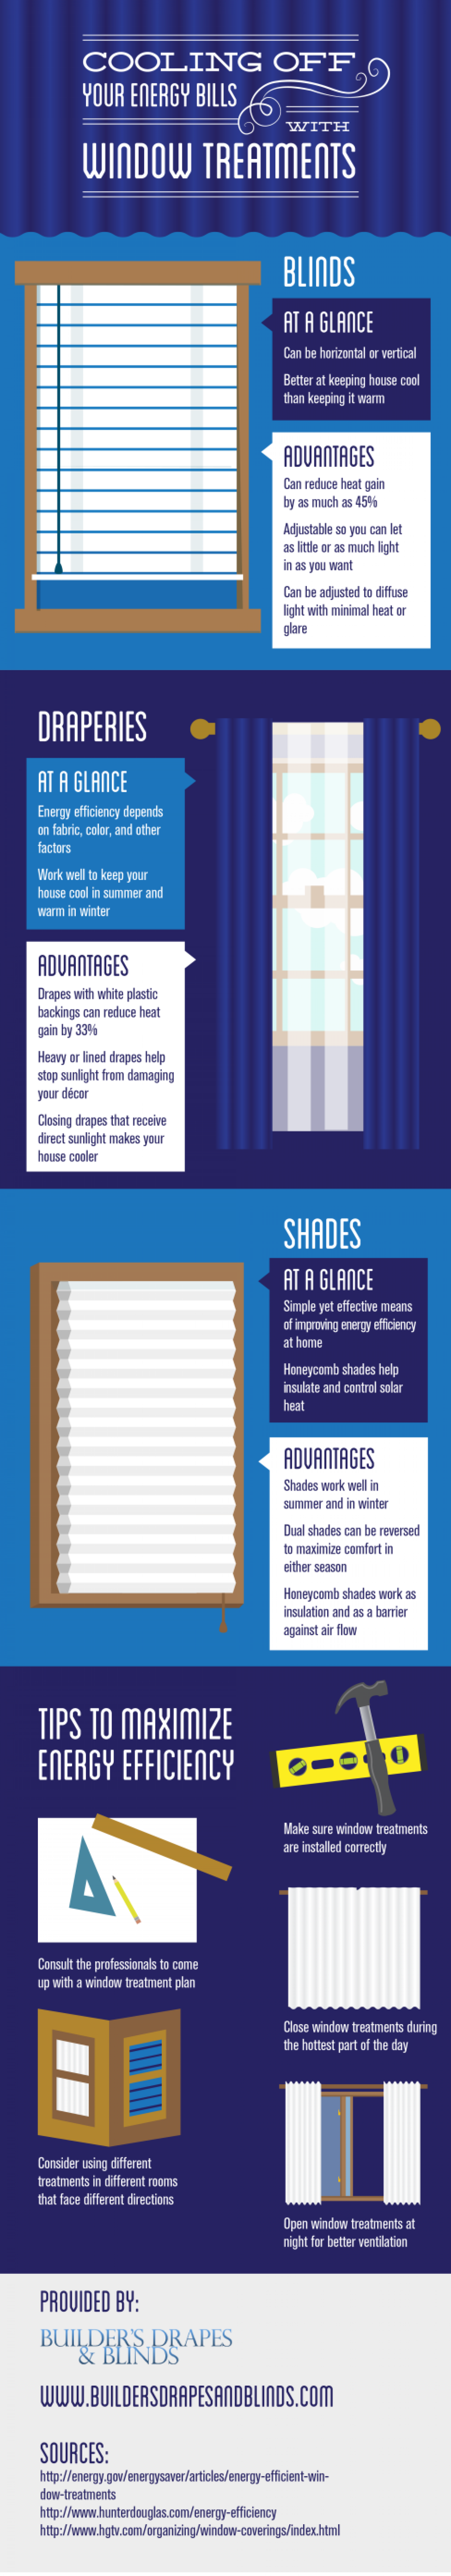 Cooling Off Your Energy Bills with Window Treatments Infographic